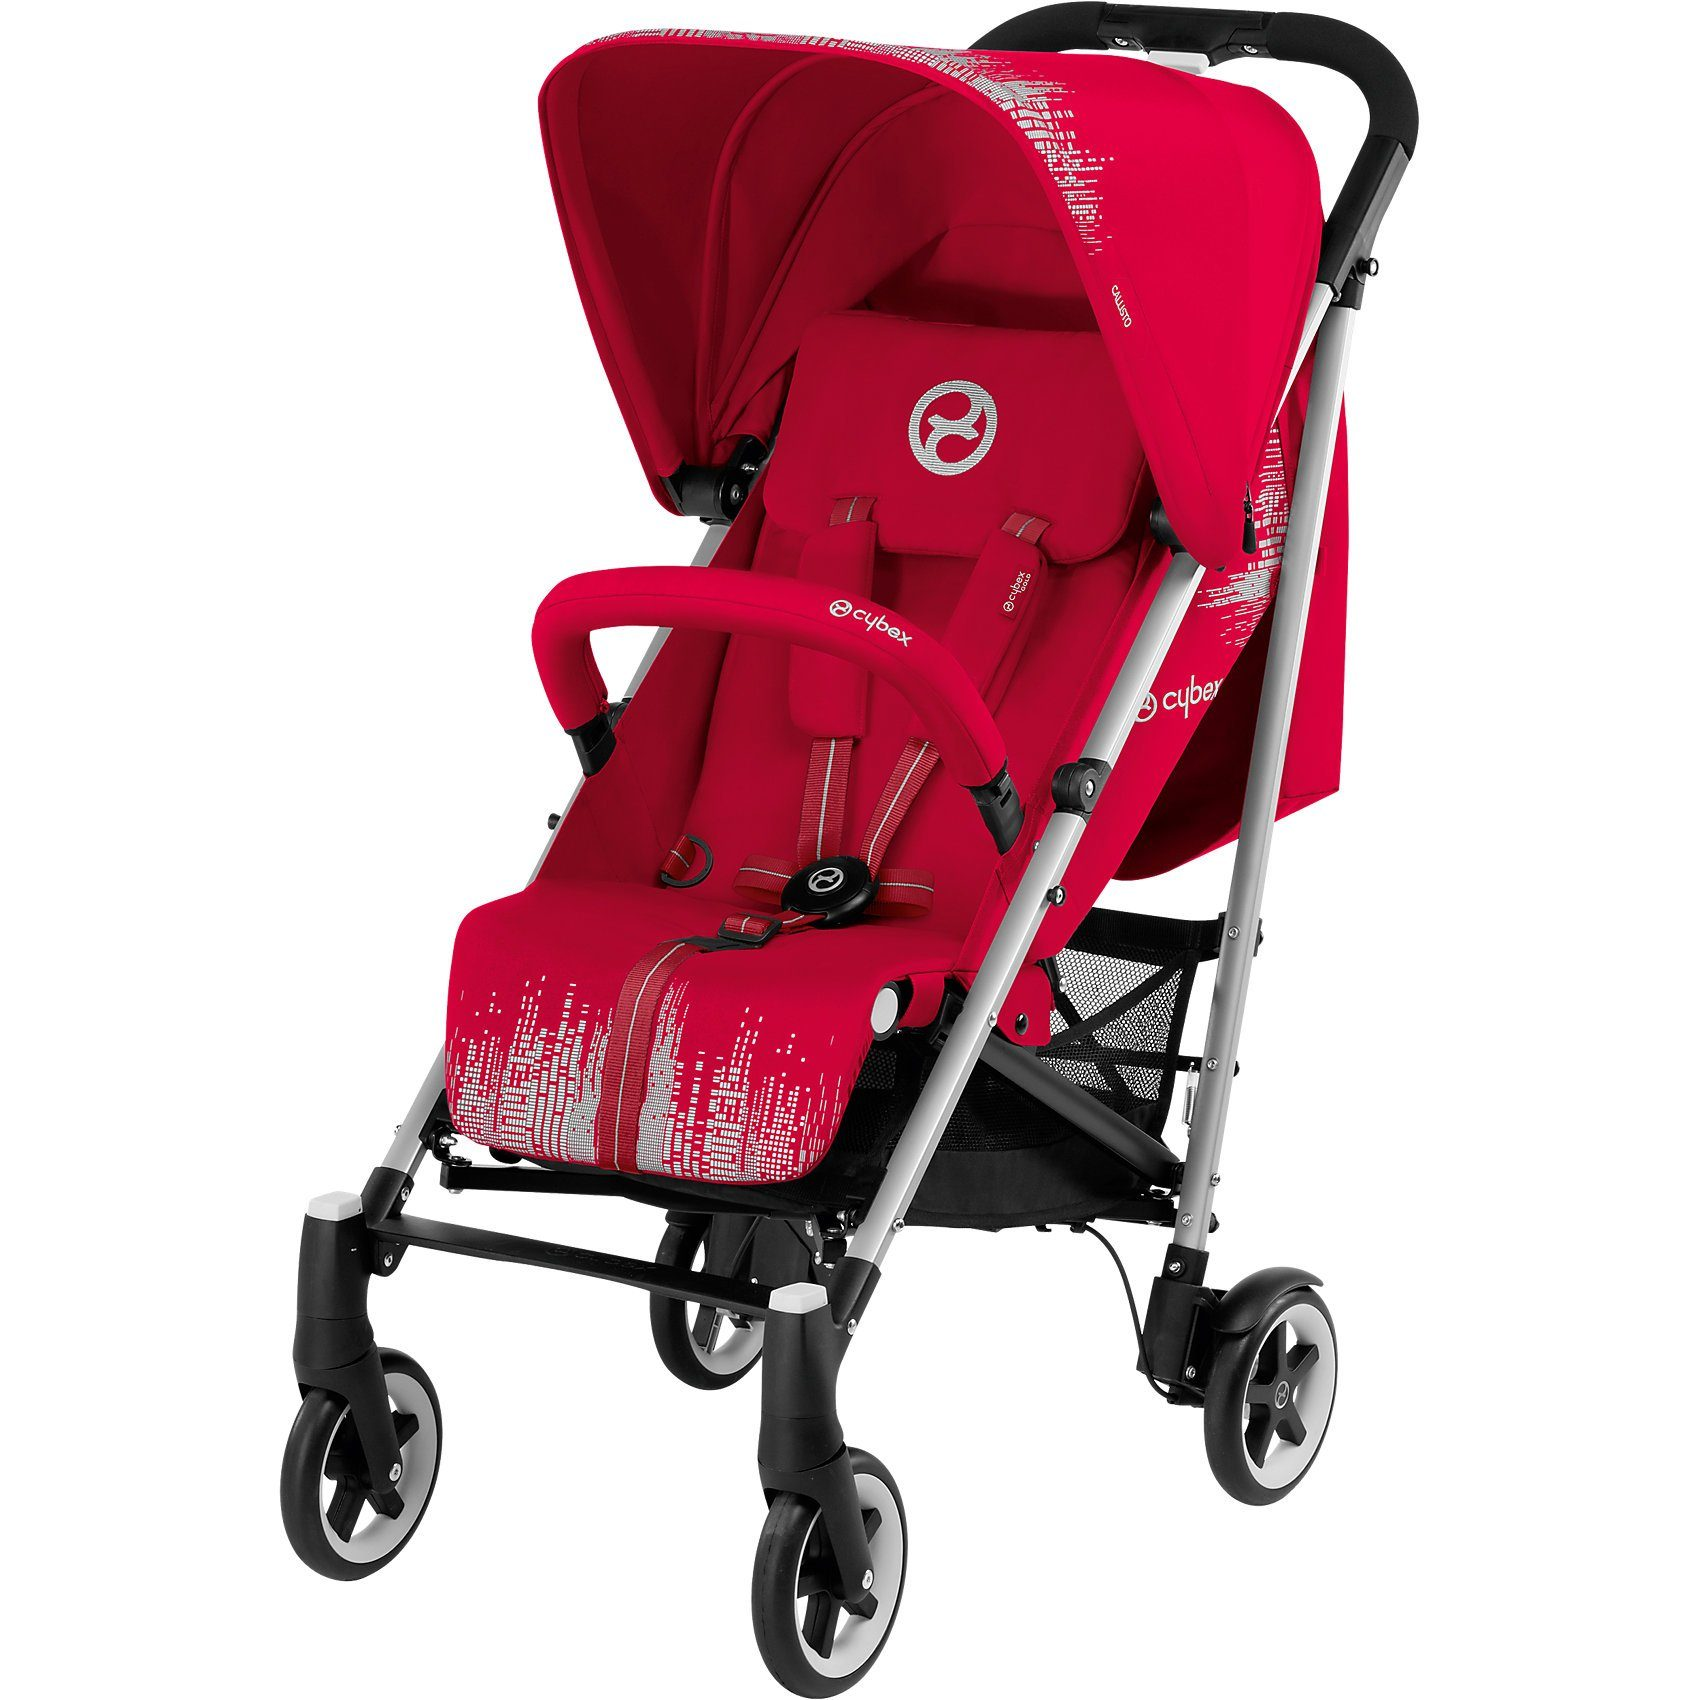 Cybex Buggy Callisto B, Gold-Line, Infra Red-Red, 2018